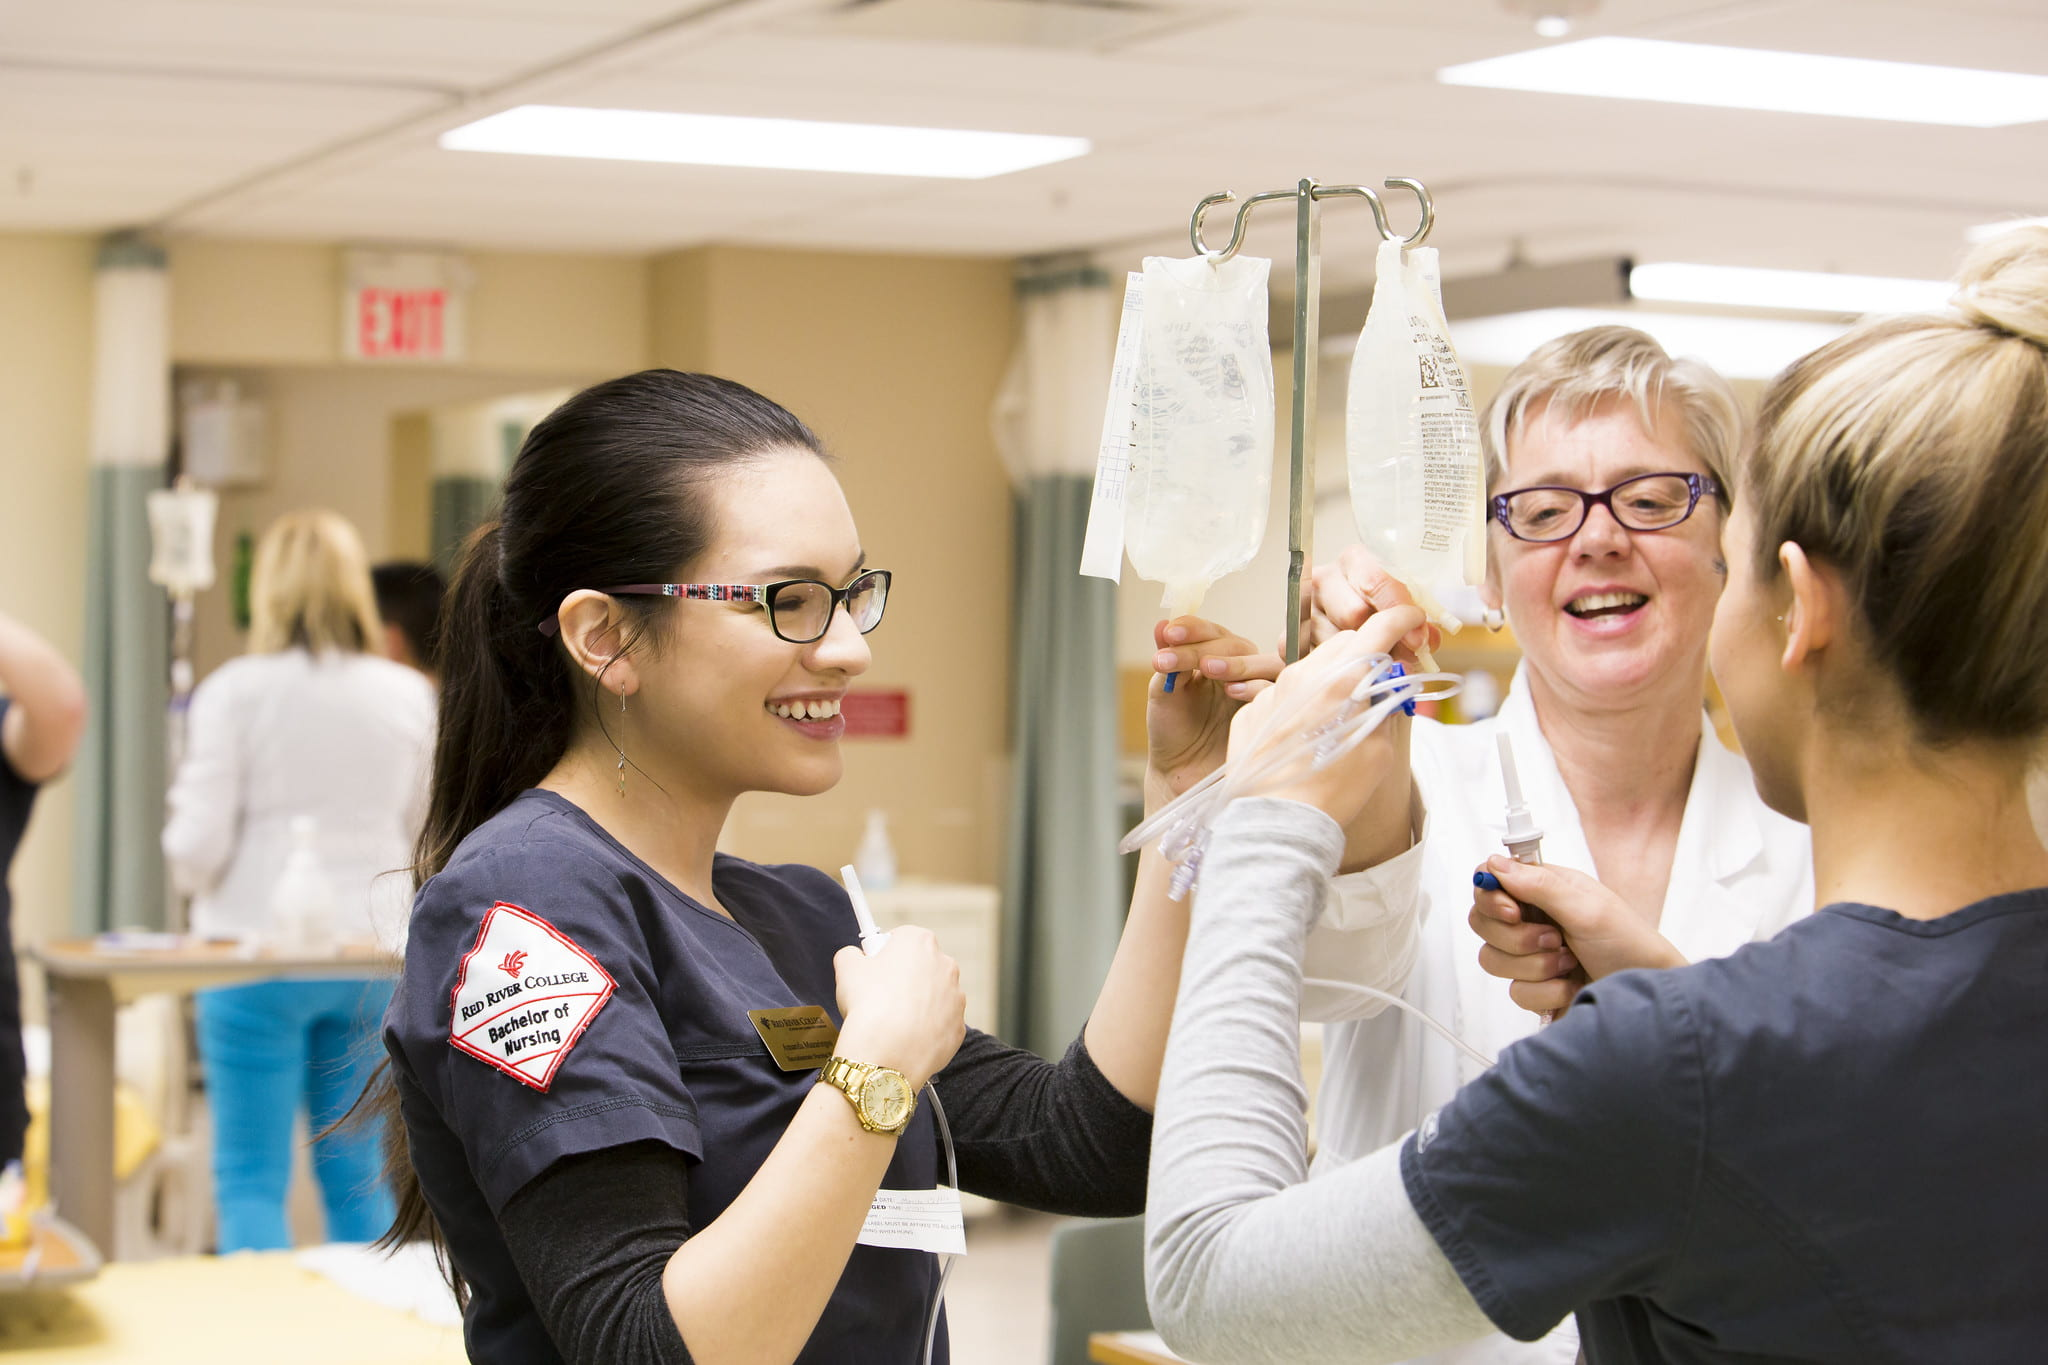 Two nursing students work with an IV supported by an instructor